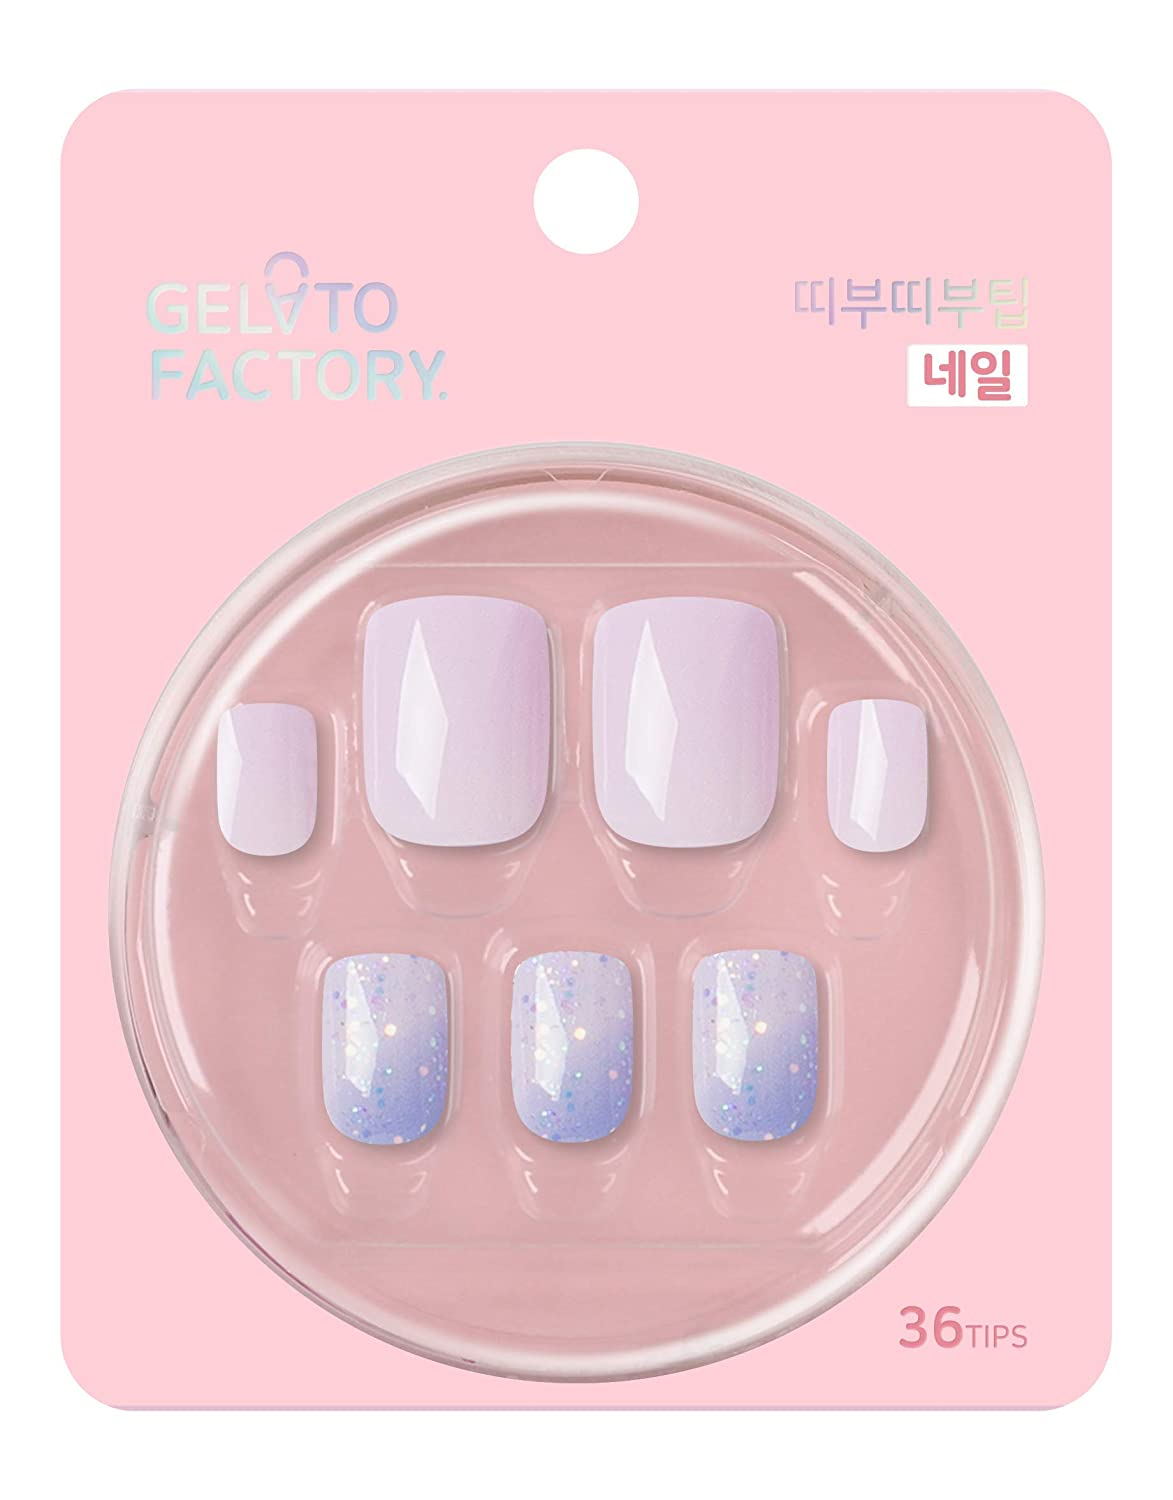 Nail-Tip [Dream Palette] by Gelato Factory - GlueFree 'Press-On Nails' false fake artificial